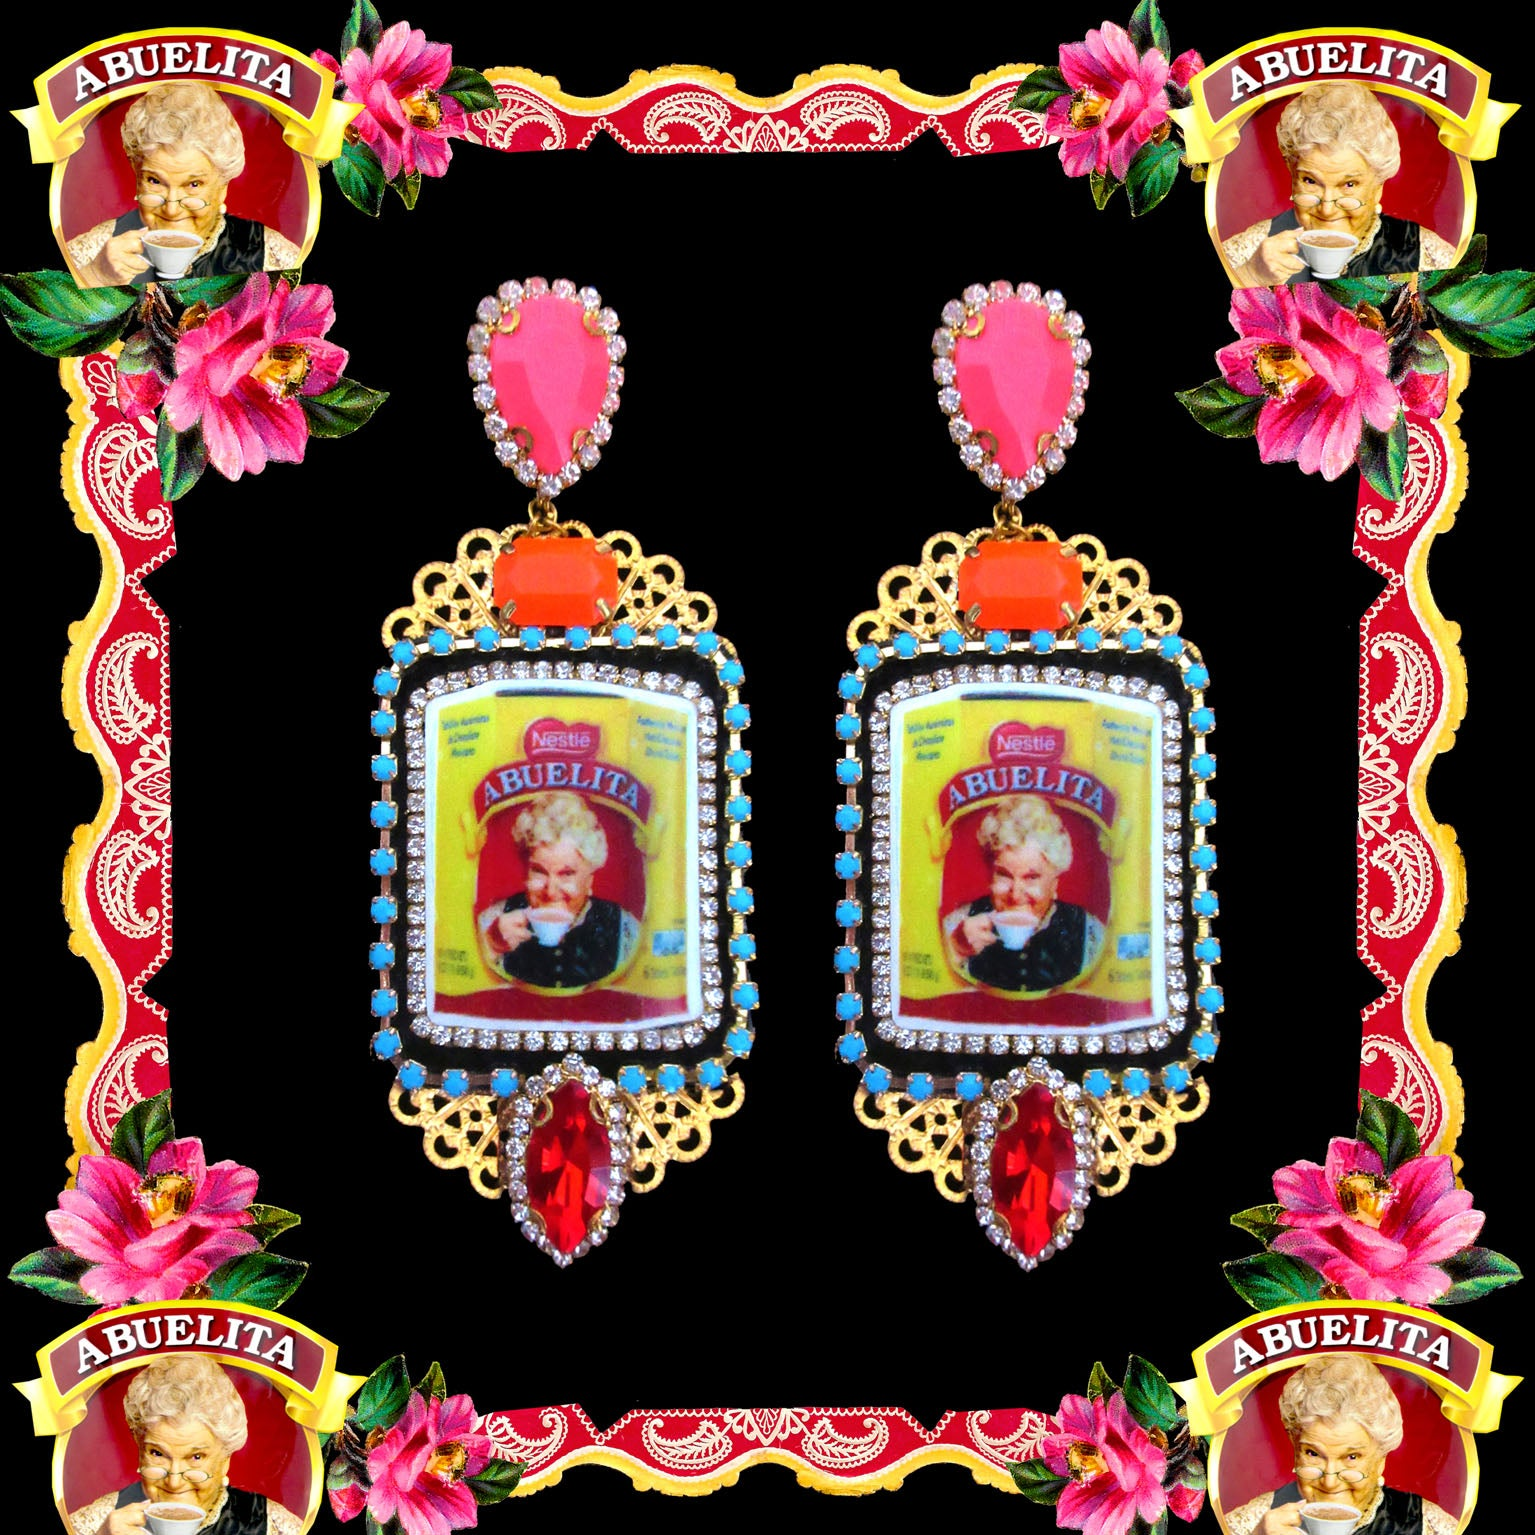 mouchkine jewelry handmade earrings pendant, an abuelita chic picture with red, pink and orange crystals. A luxury haute couture creation.